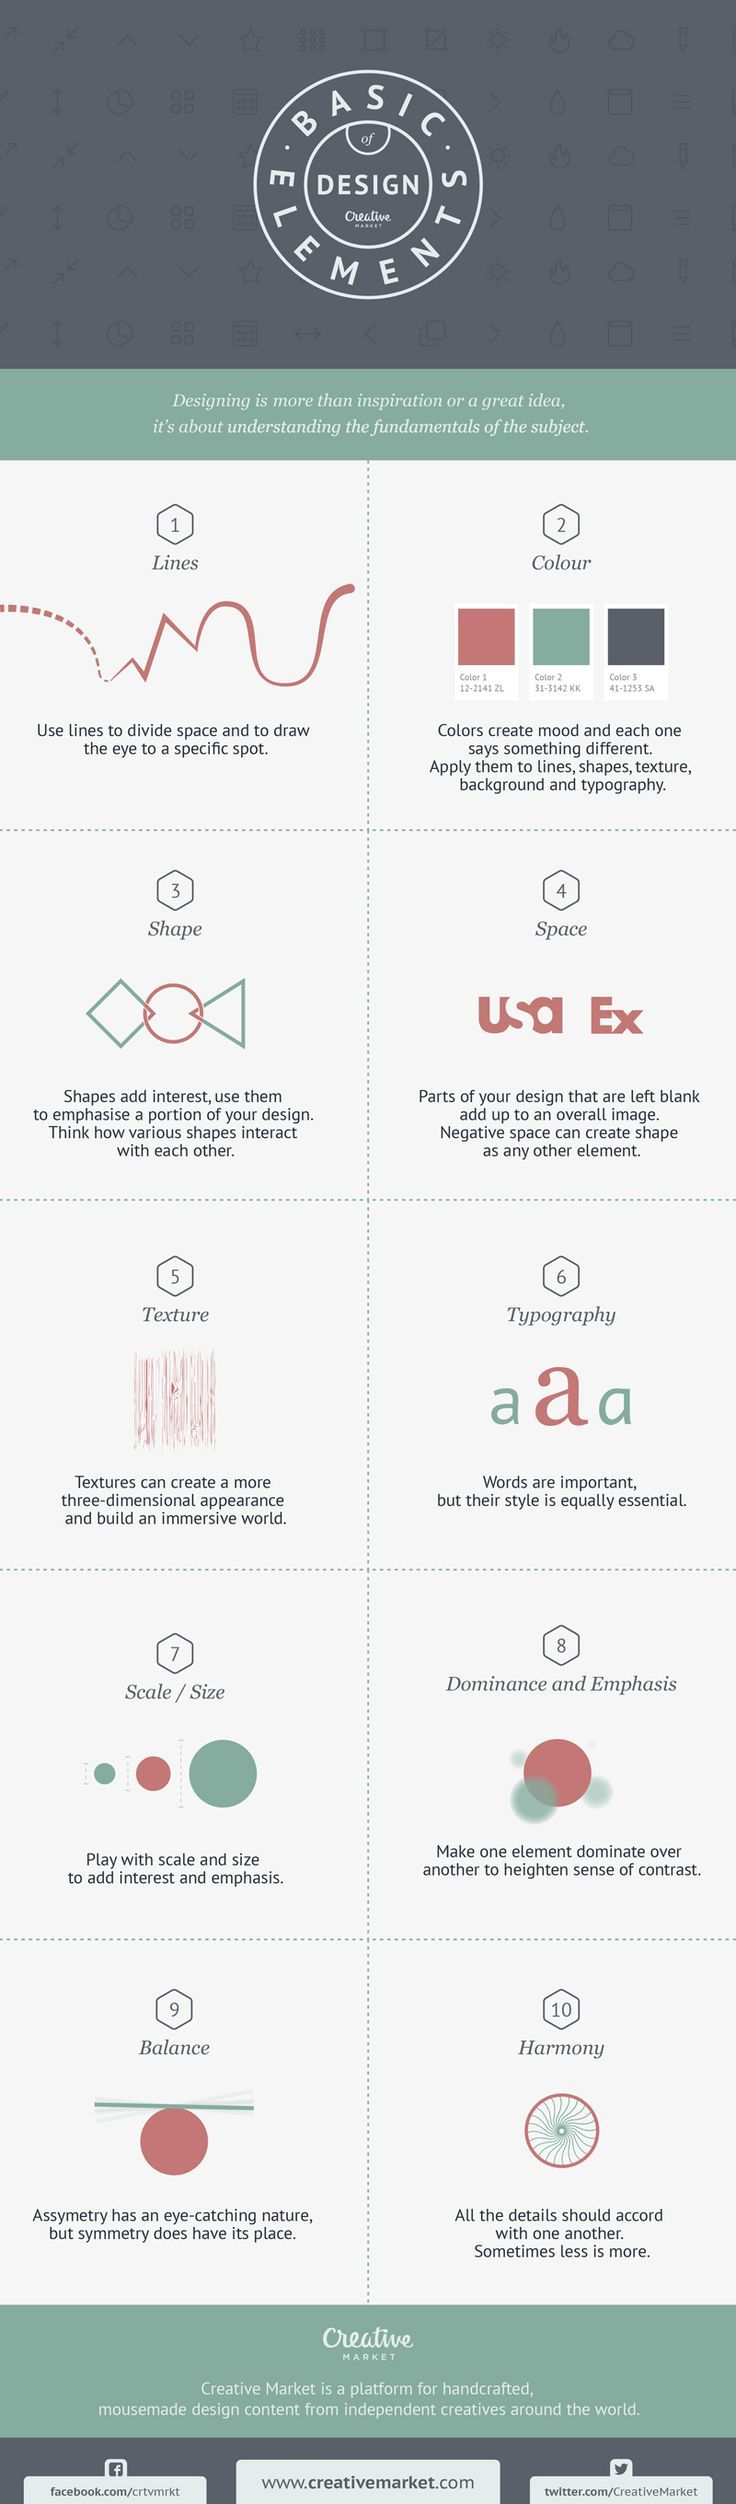 Any good craft needs a toolbox. If you're a designer, your toolbox is style, which unfortunately you can't put into organized drawers. This graphic, however, lays out your basic tools as a designer.: